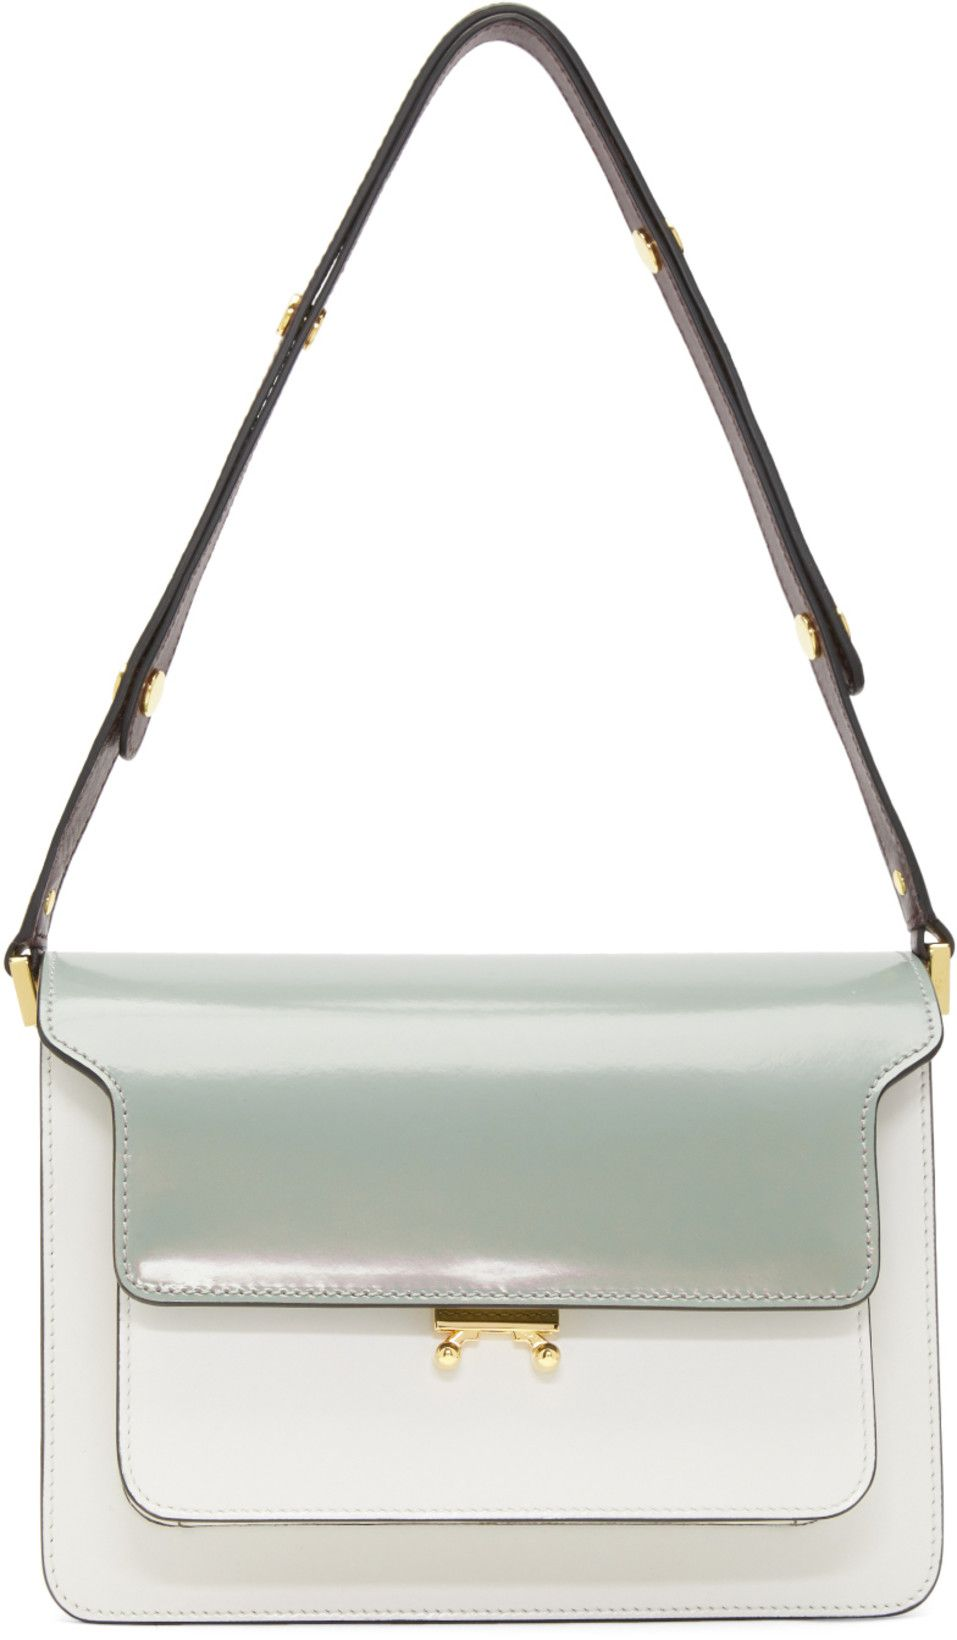 00f2a1d85ed Marni - Green   White Medium Trunk Bag. Find this Pin and more on Handbags  ...